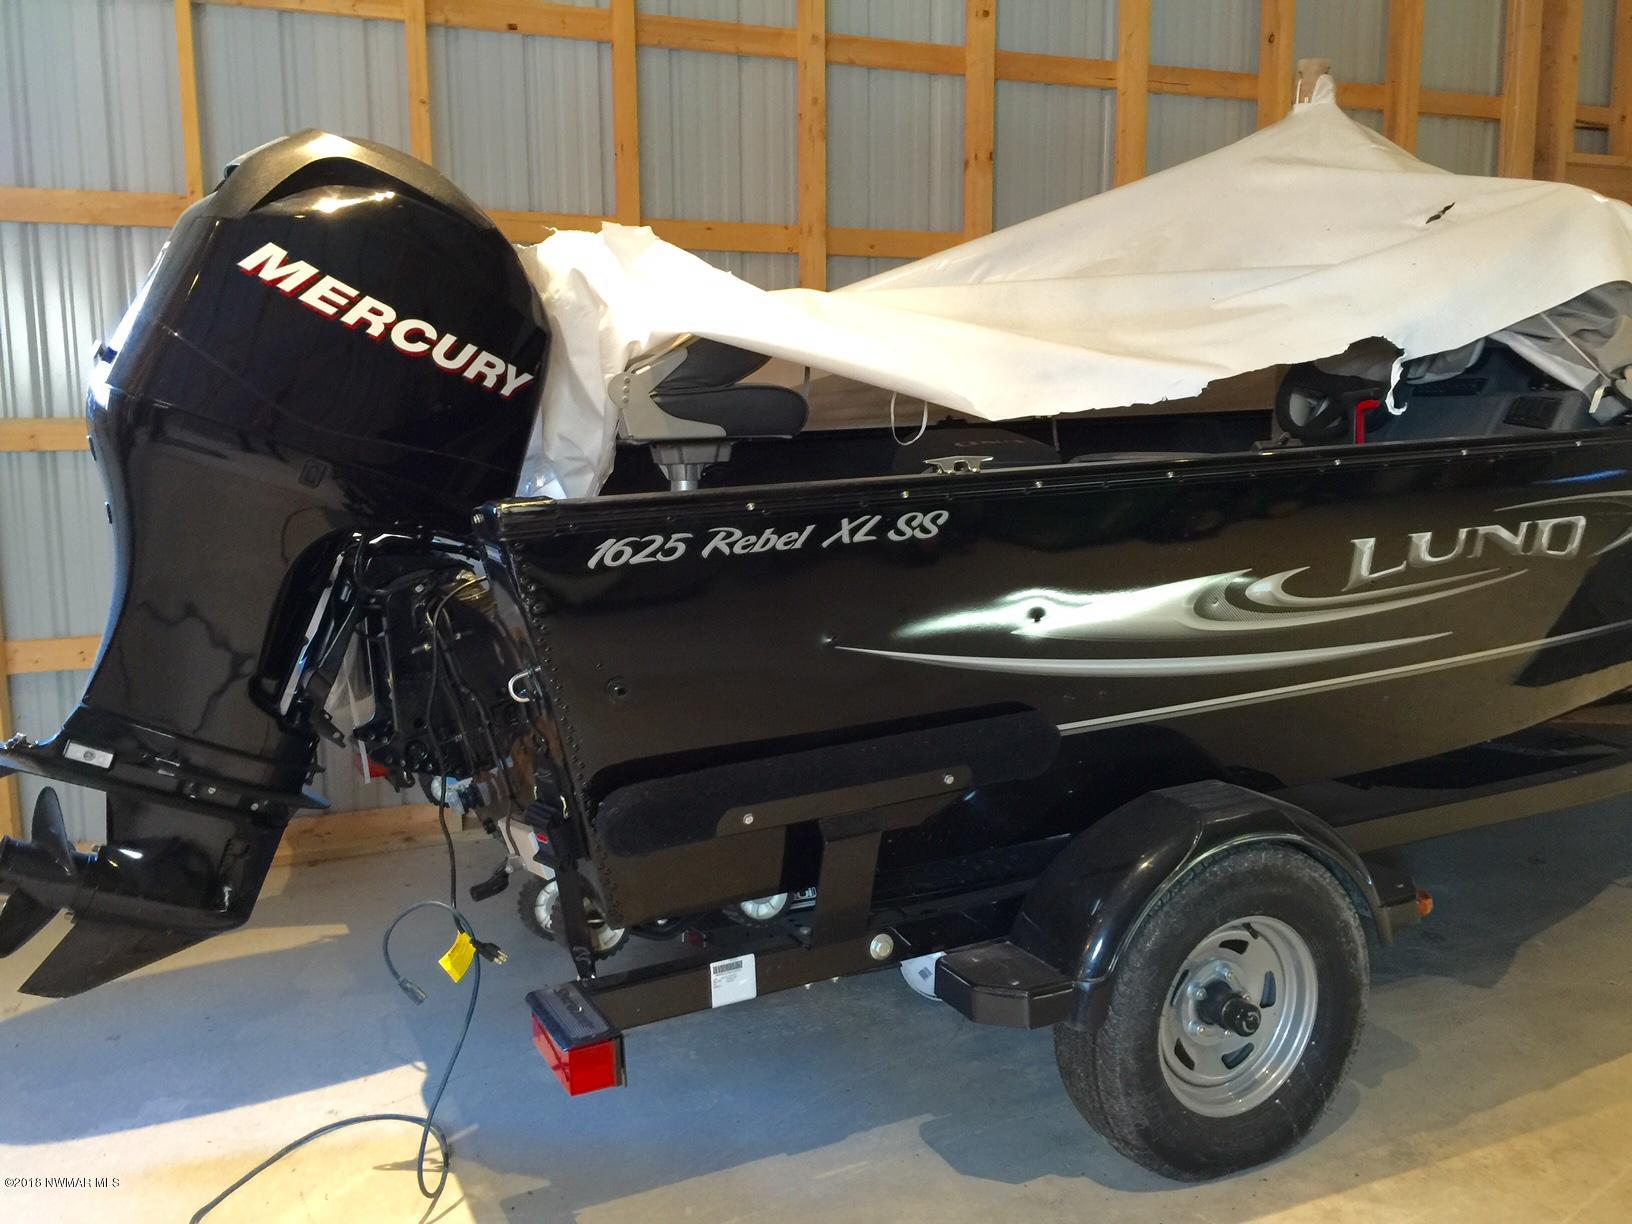 1625 Lund Rebel with 75 HP Mercury 4 stroke motor with 10 hours.